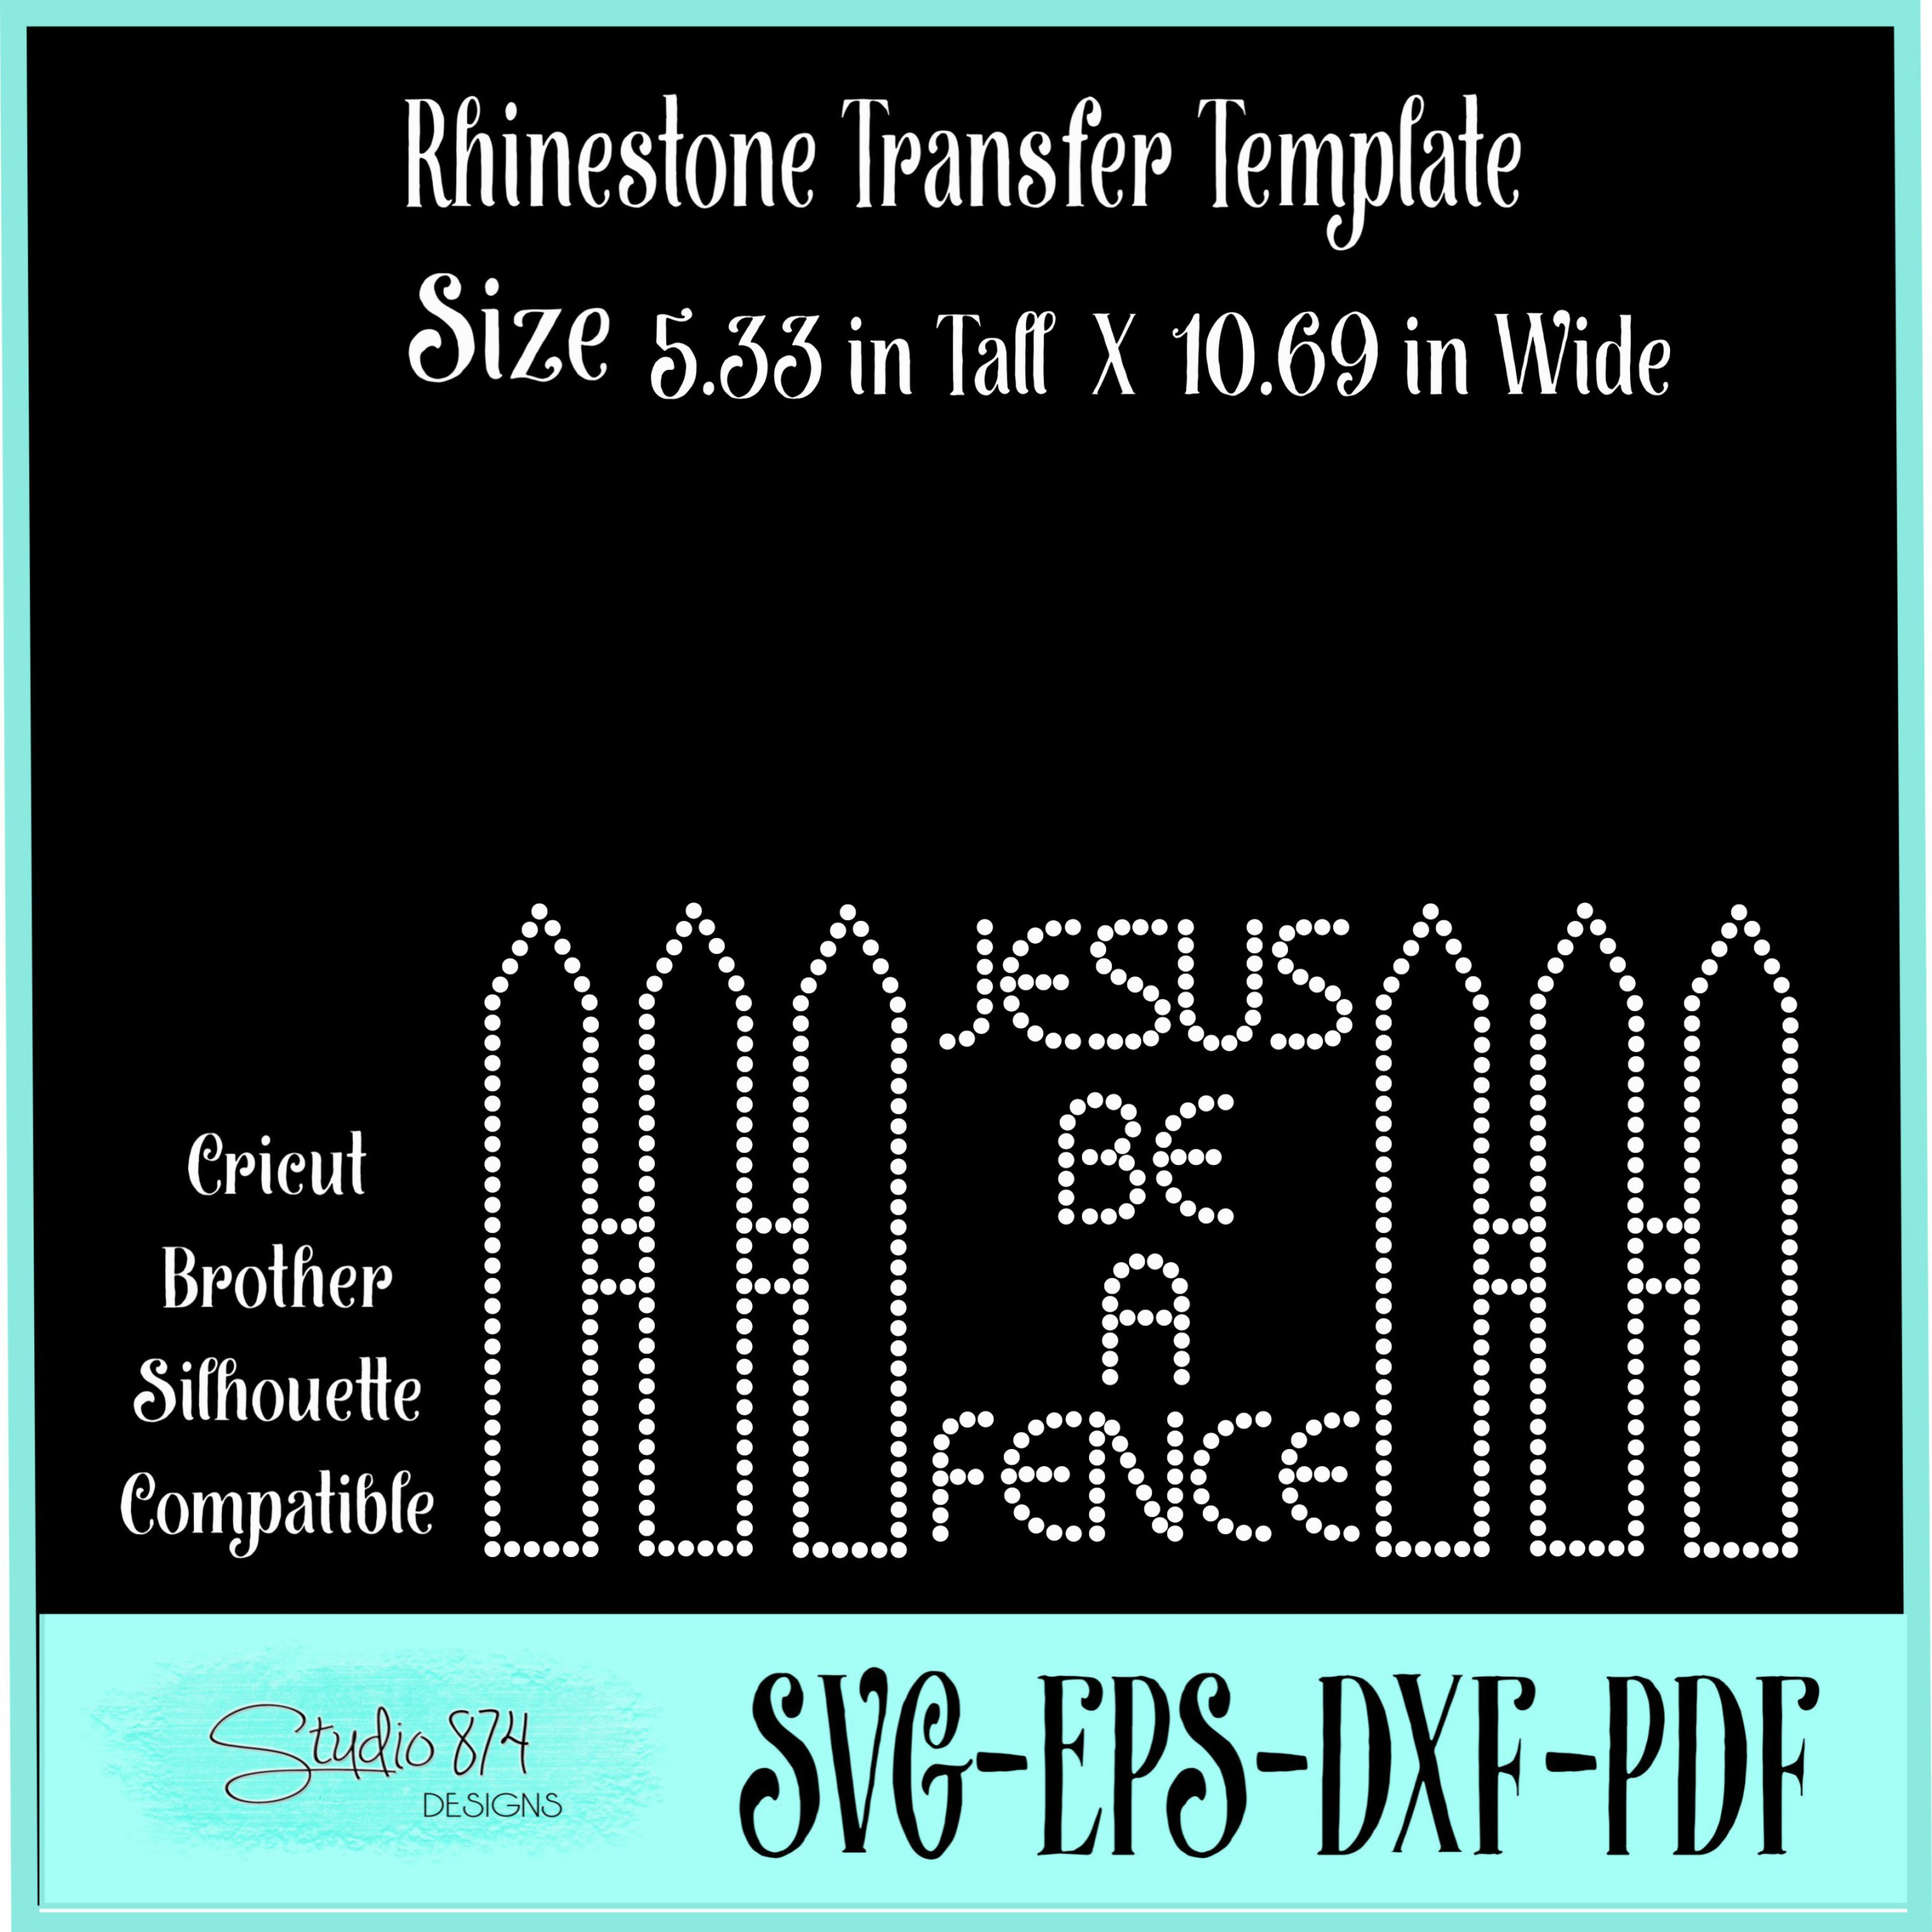 Faith Religious Rhinestone SVG Template - Jesus Be a Fence example image 2